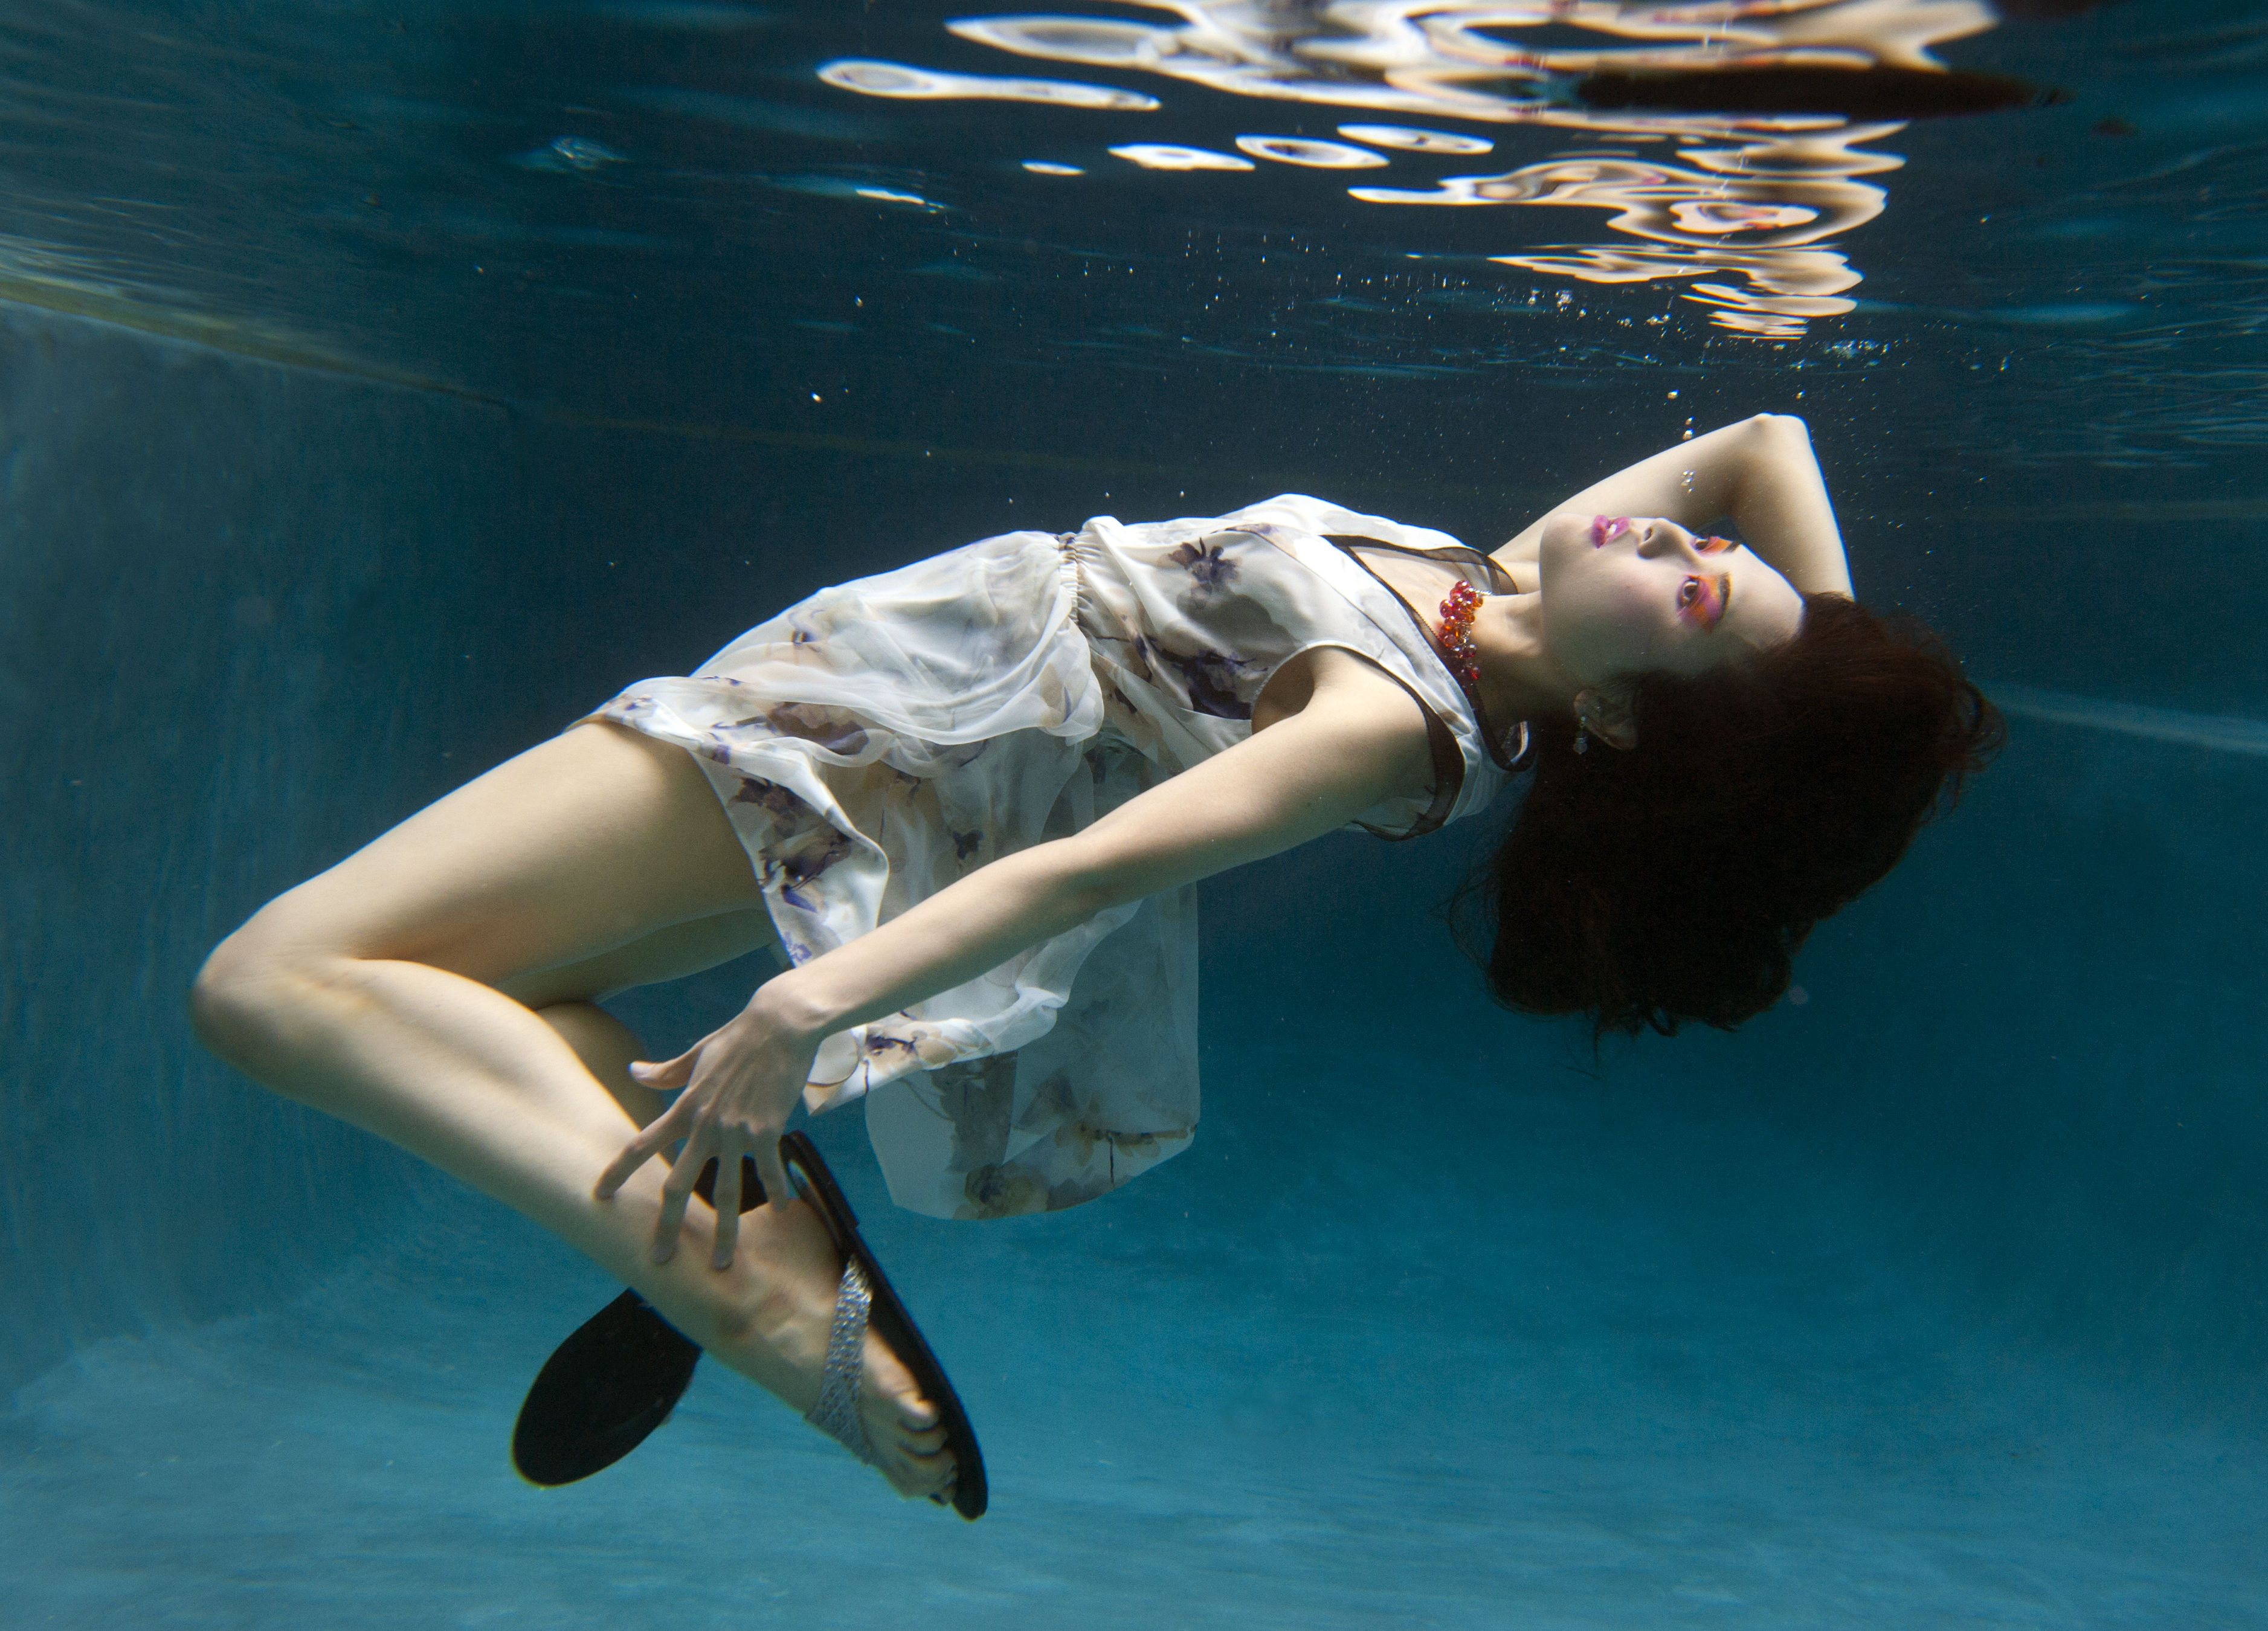 Behind-the-scenes: Sun Magazine underwater photo shoot